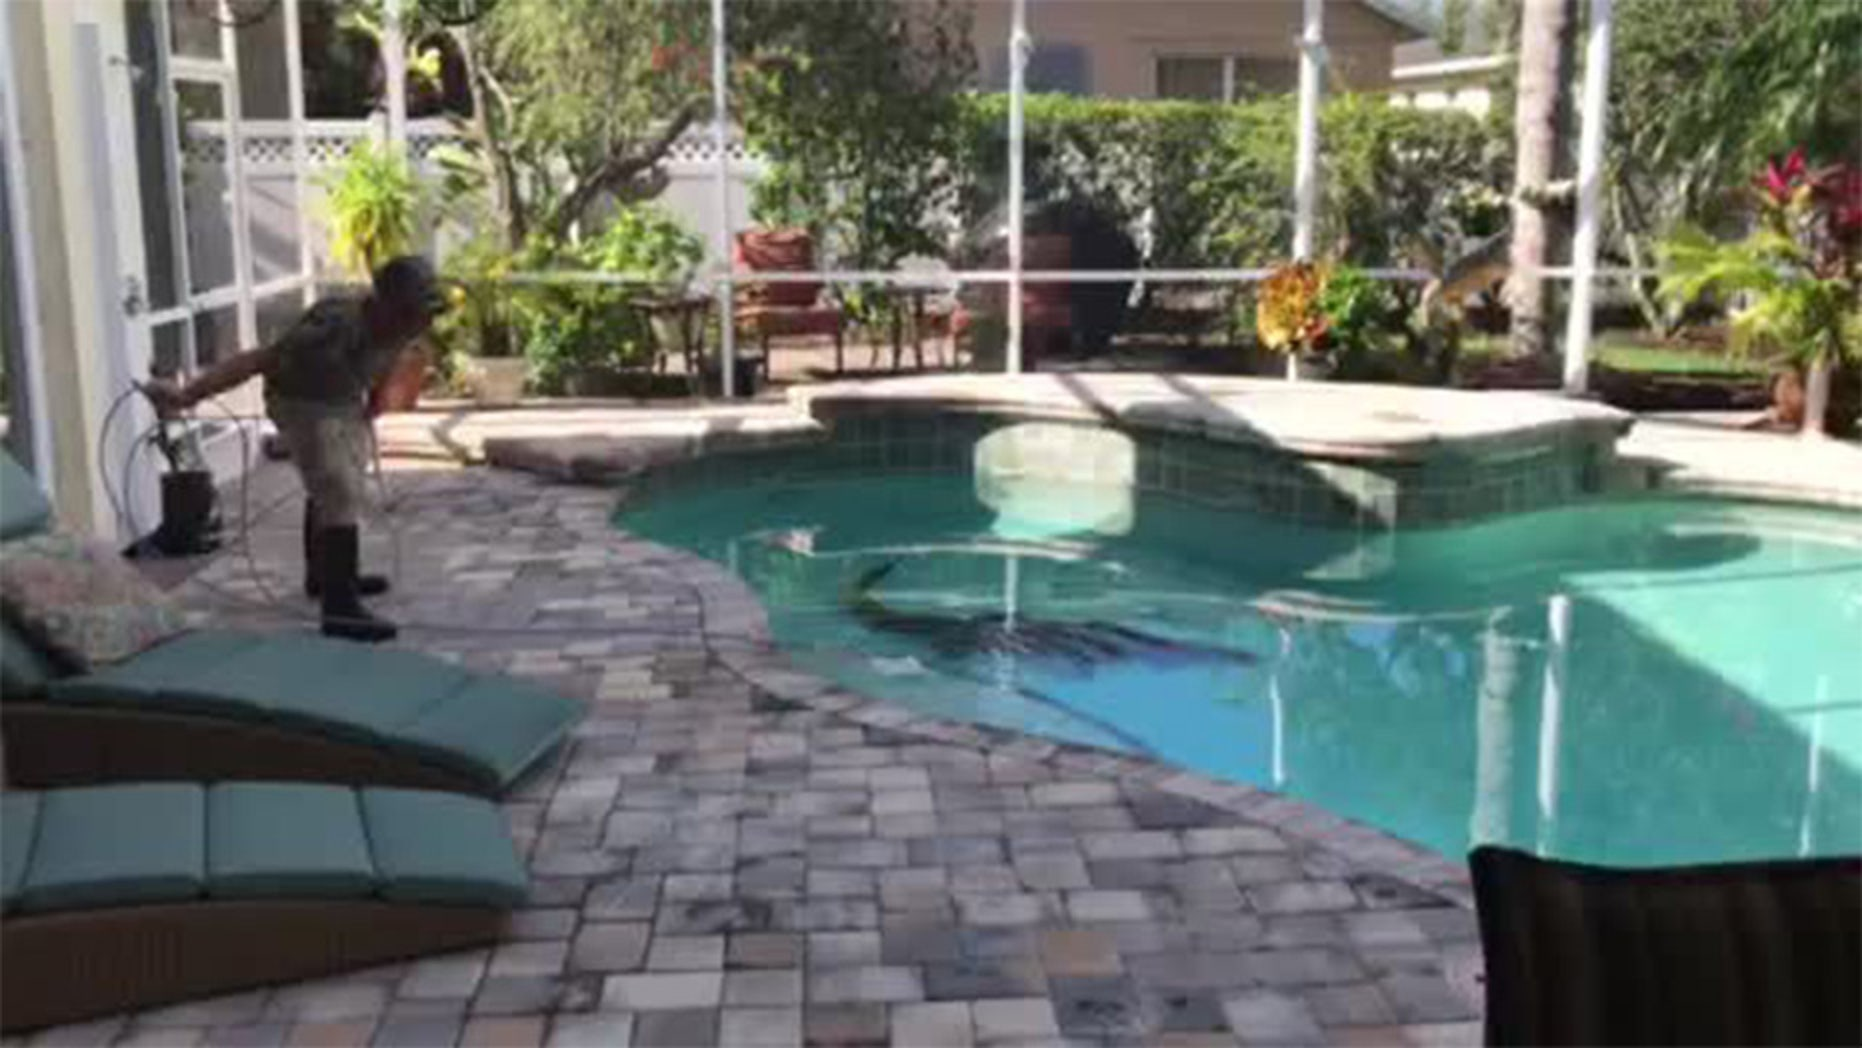 A Florida couple woke up Wednesday morning to find a 300-pound alligator in their pool.